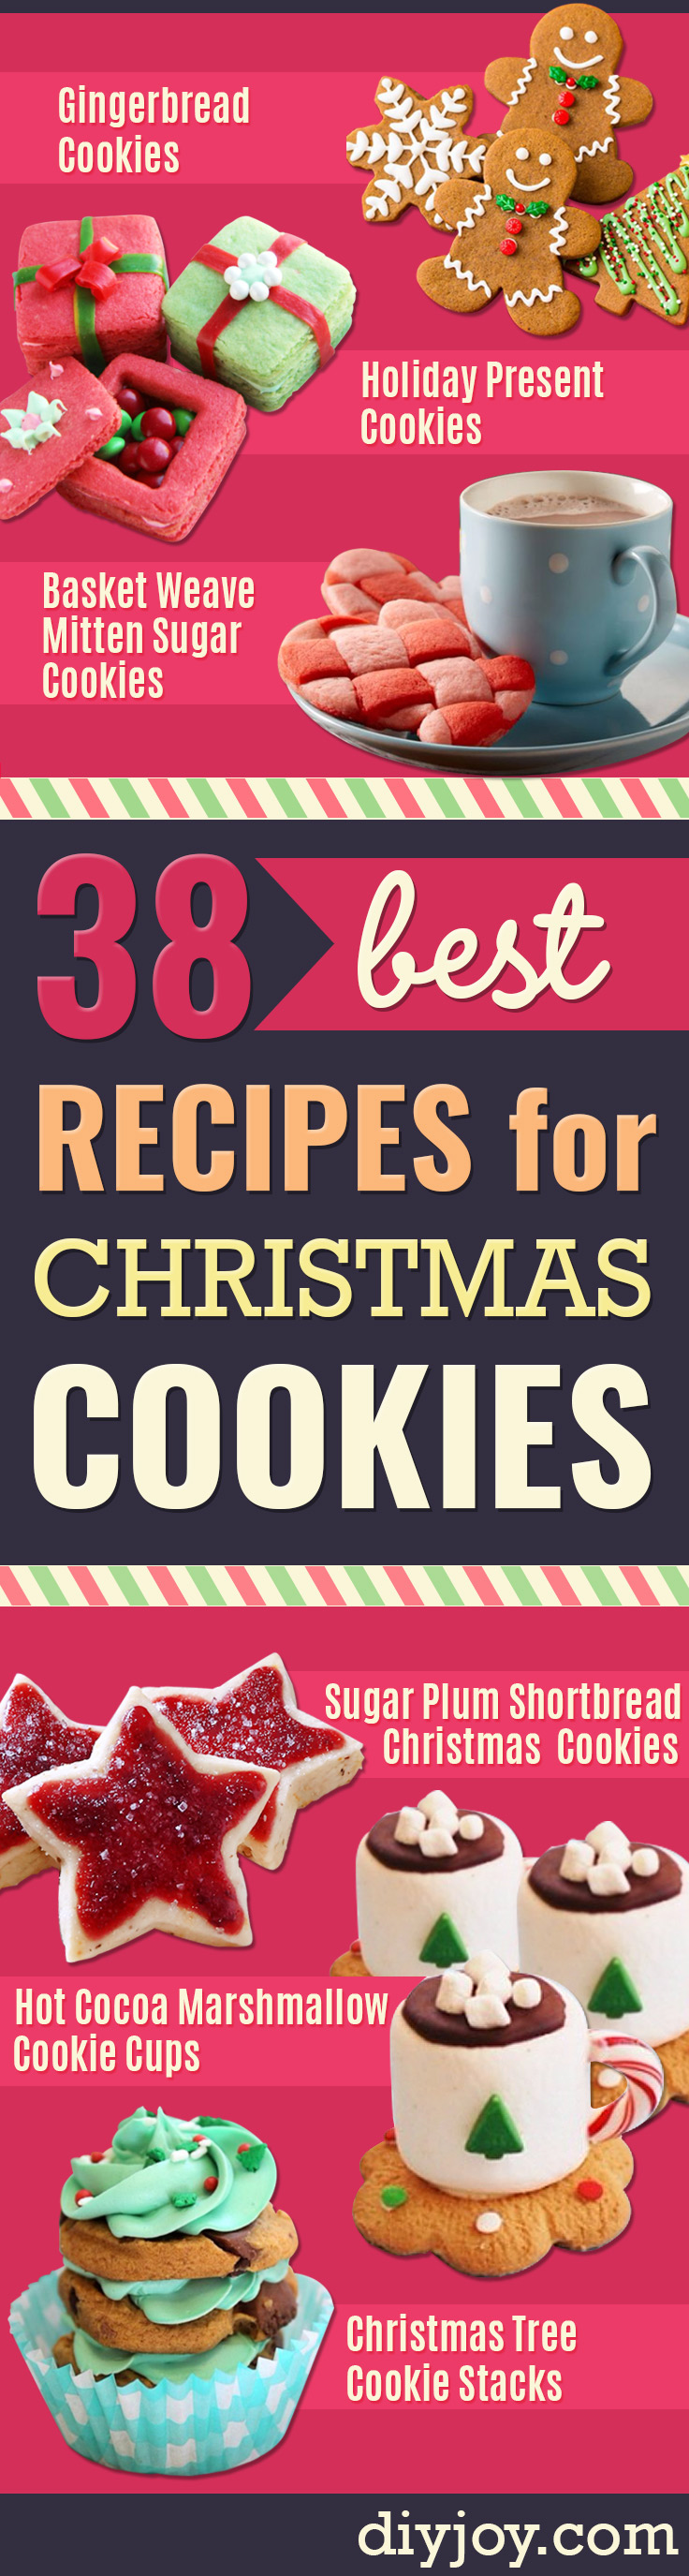 christmas cookie recipes - Easy Decorated Holiday Cookies - decorating ideas for christmas cookies - Candy Cookie Recipes Ideas for Kids - Traditional Favorites and Gluten Free and Healthy Versions - Quick No Bake Cookies and Last Minute Desserts for the Holidays